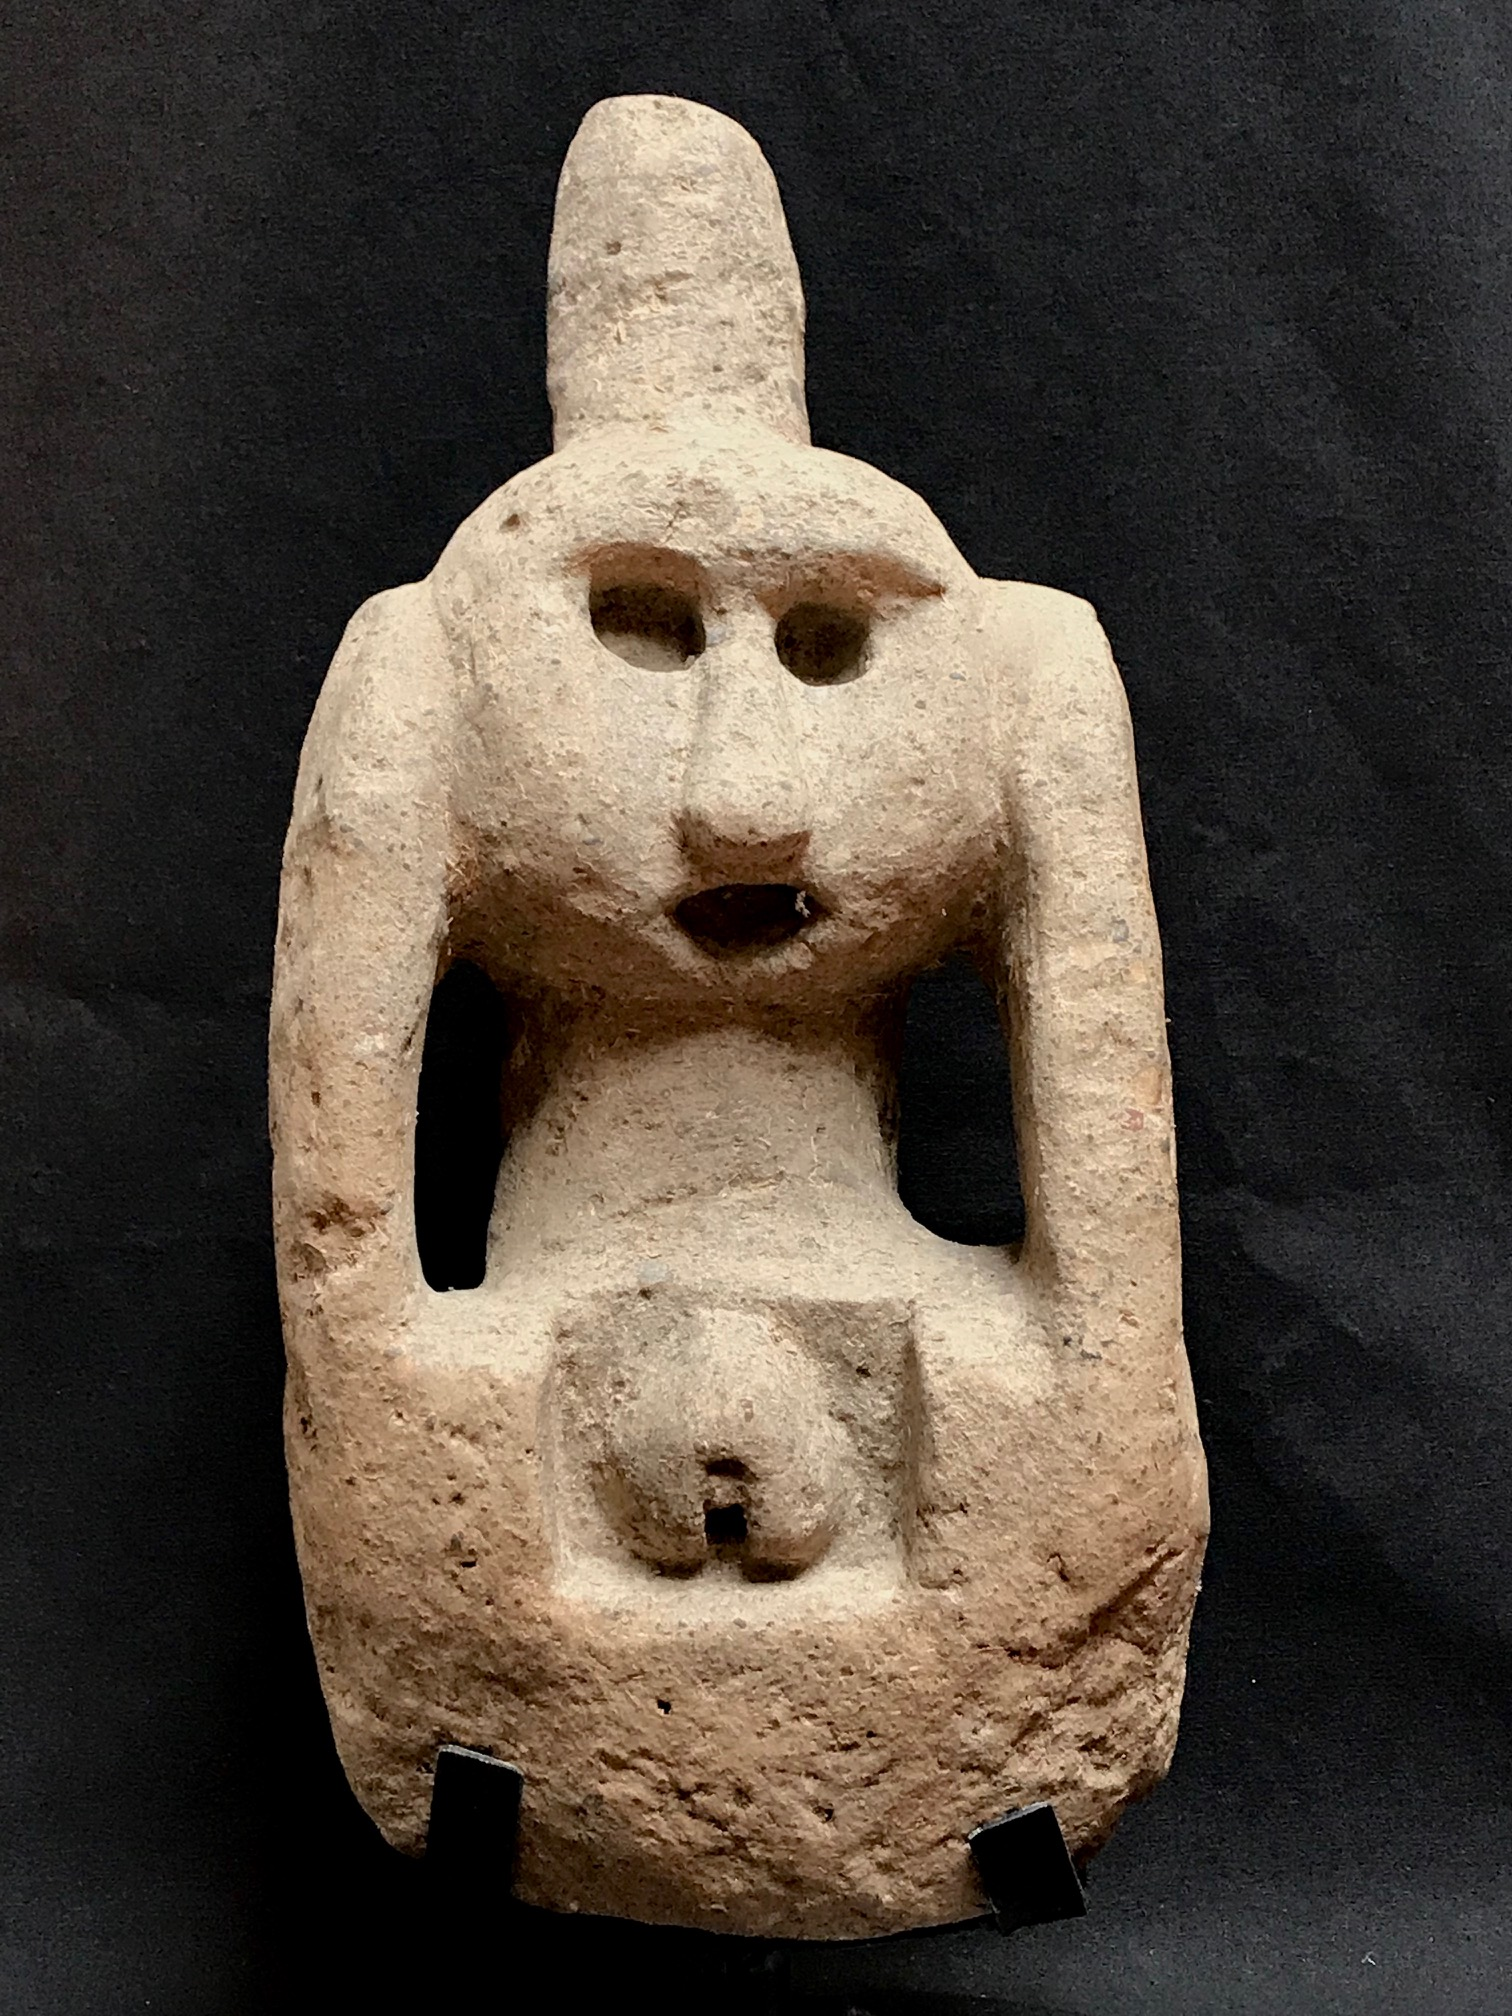 """Female Magic Figure, Shaman uses this for prayer and to gather healing power to treat people. Kodi village, West Sumba, Indonesia, early to mid 20th c., stone, 14 1/2"""" x 7"""" x 6 1/2"""" without base (16 1/2"""" with base),"""